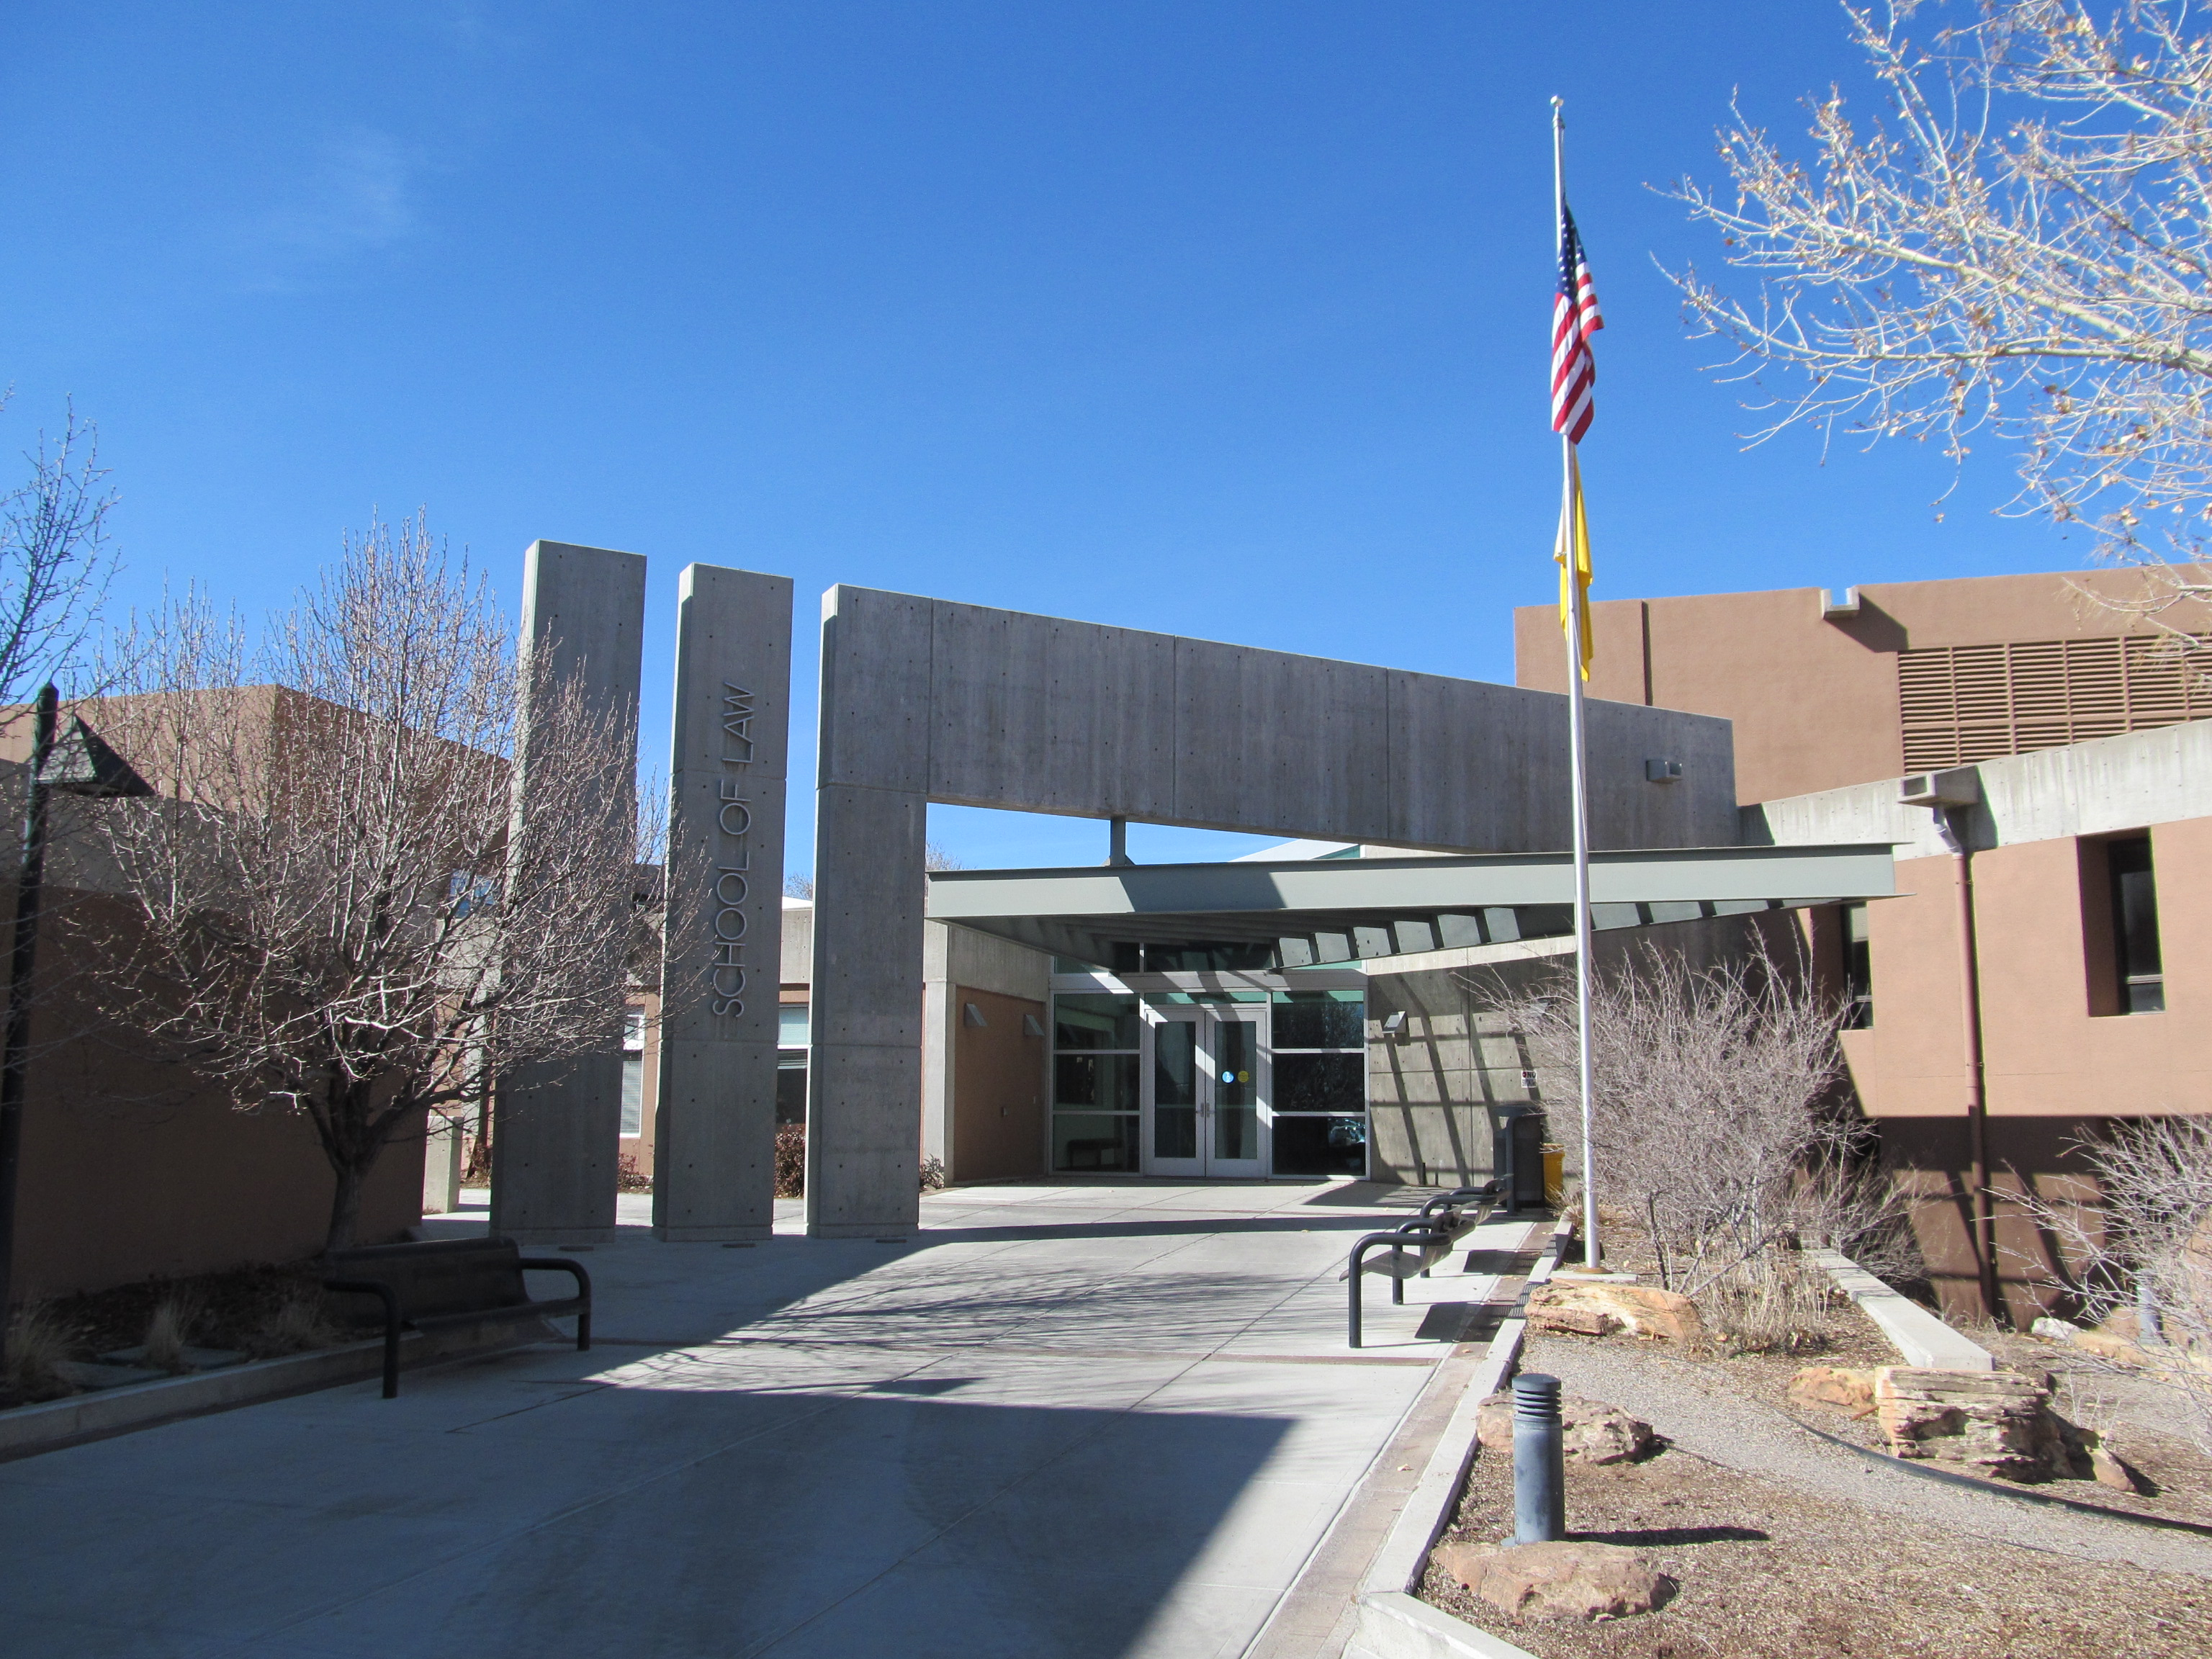 File:University of New Mexico School of Law, Albuquerque NM